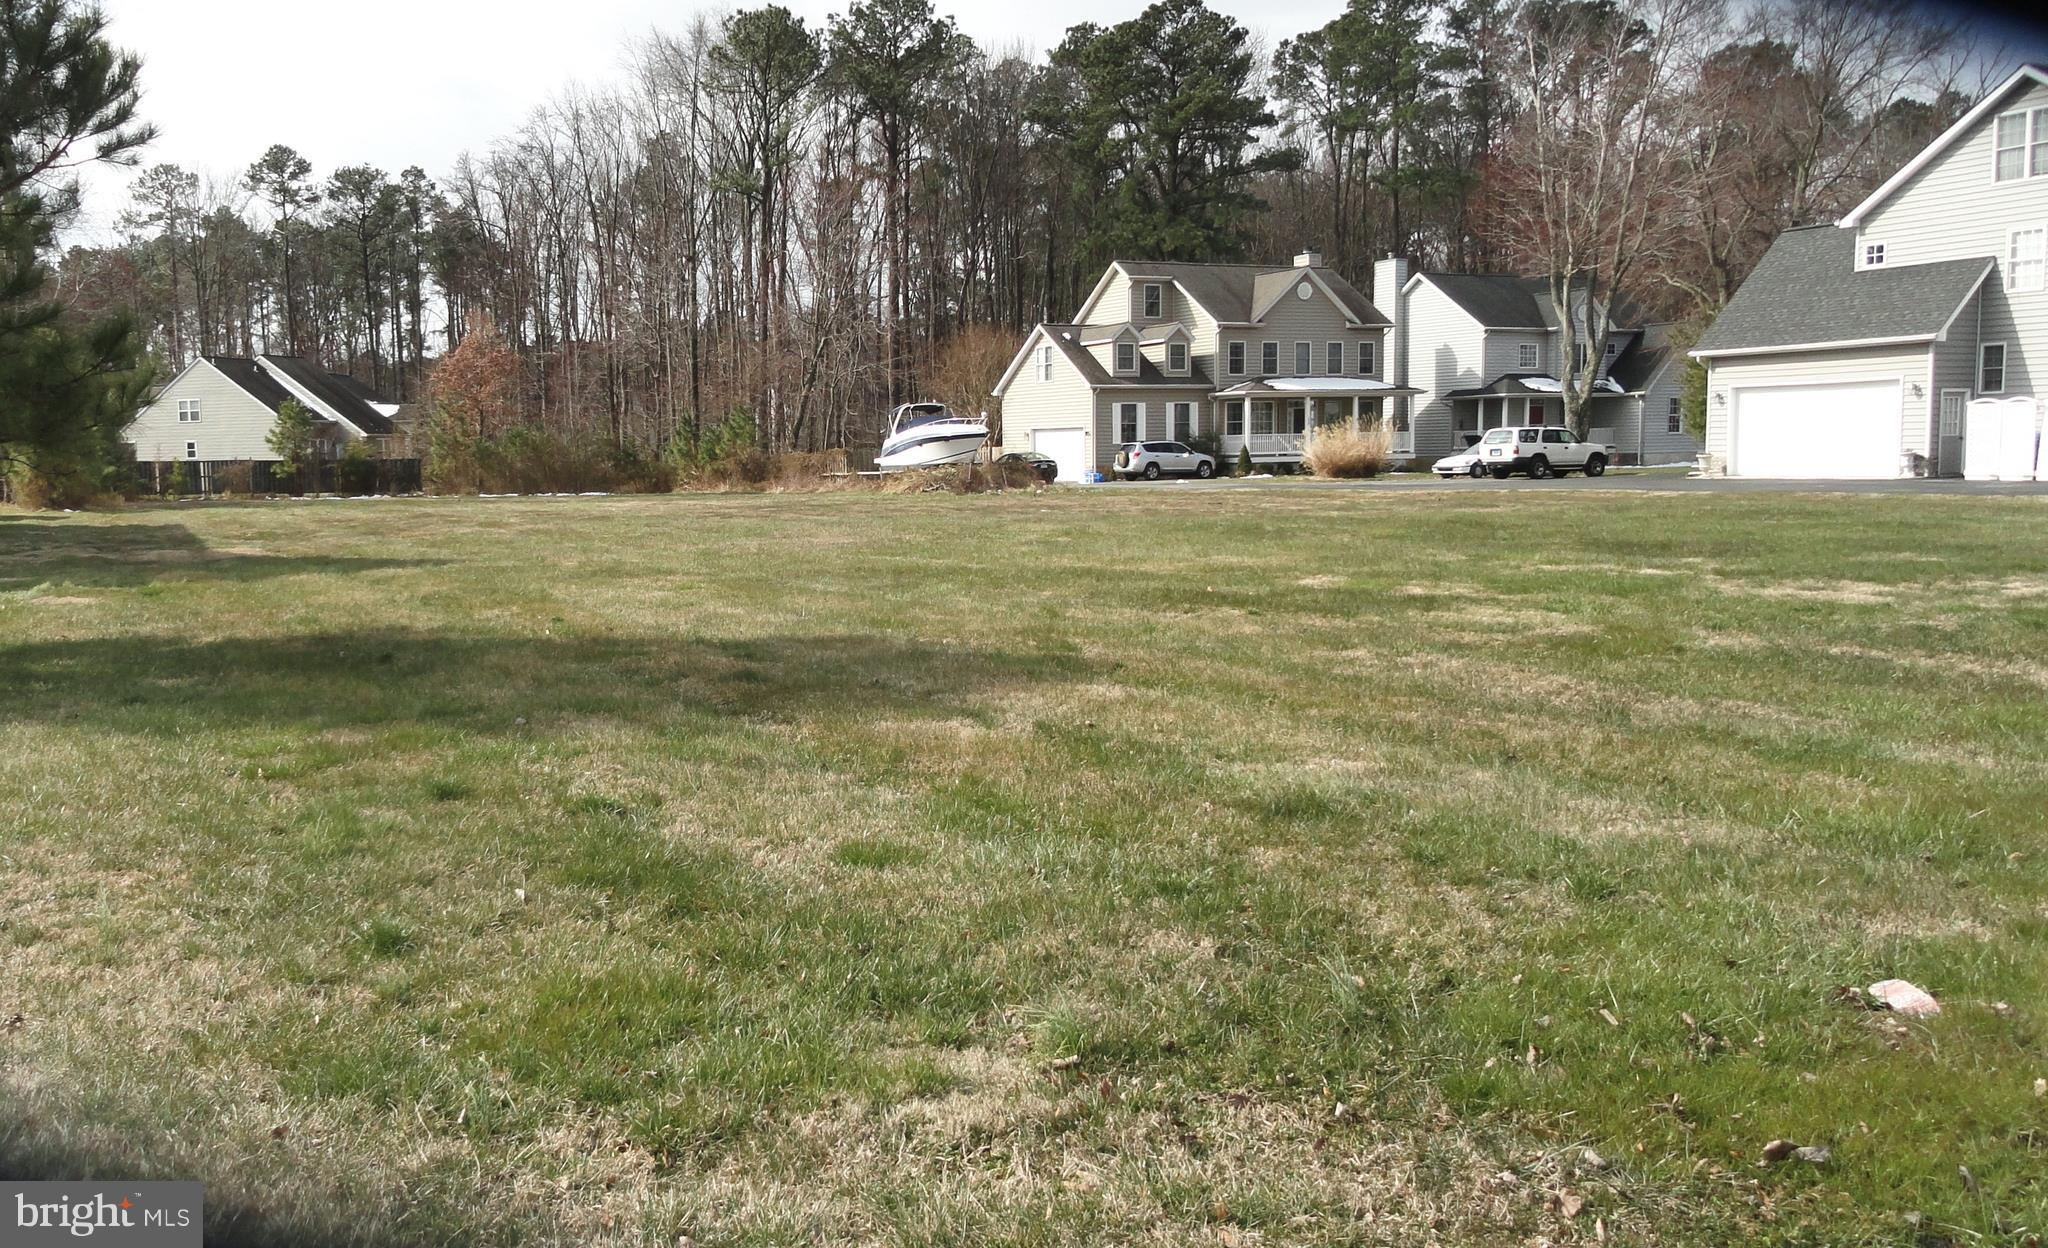 0 POSTAL ROAD, CHESTER, MD 21619